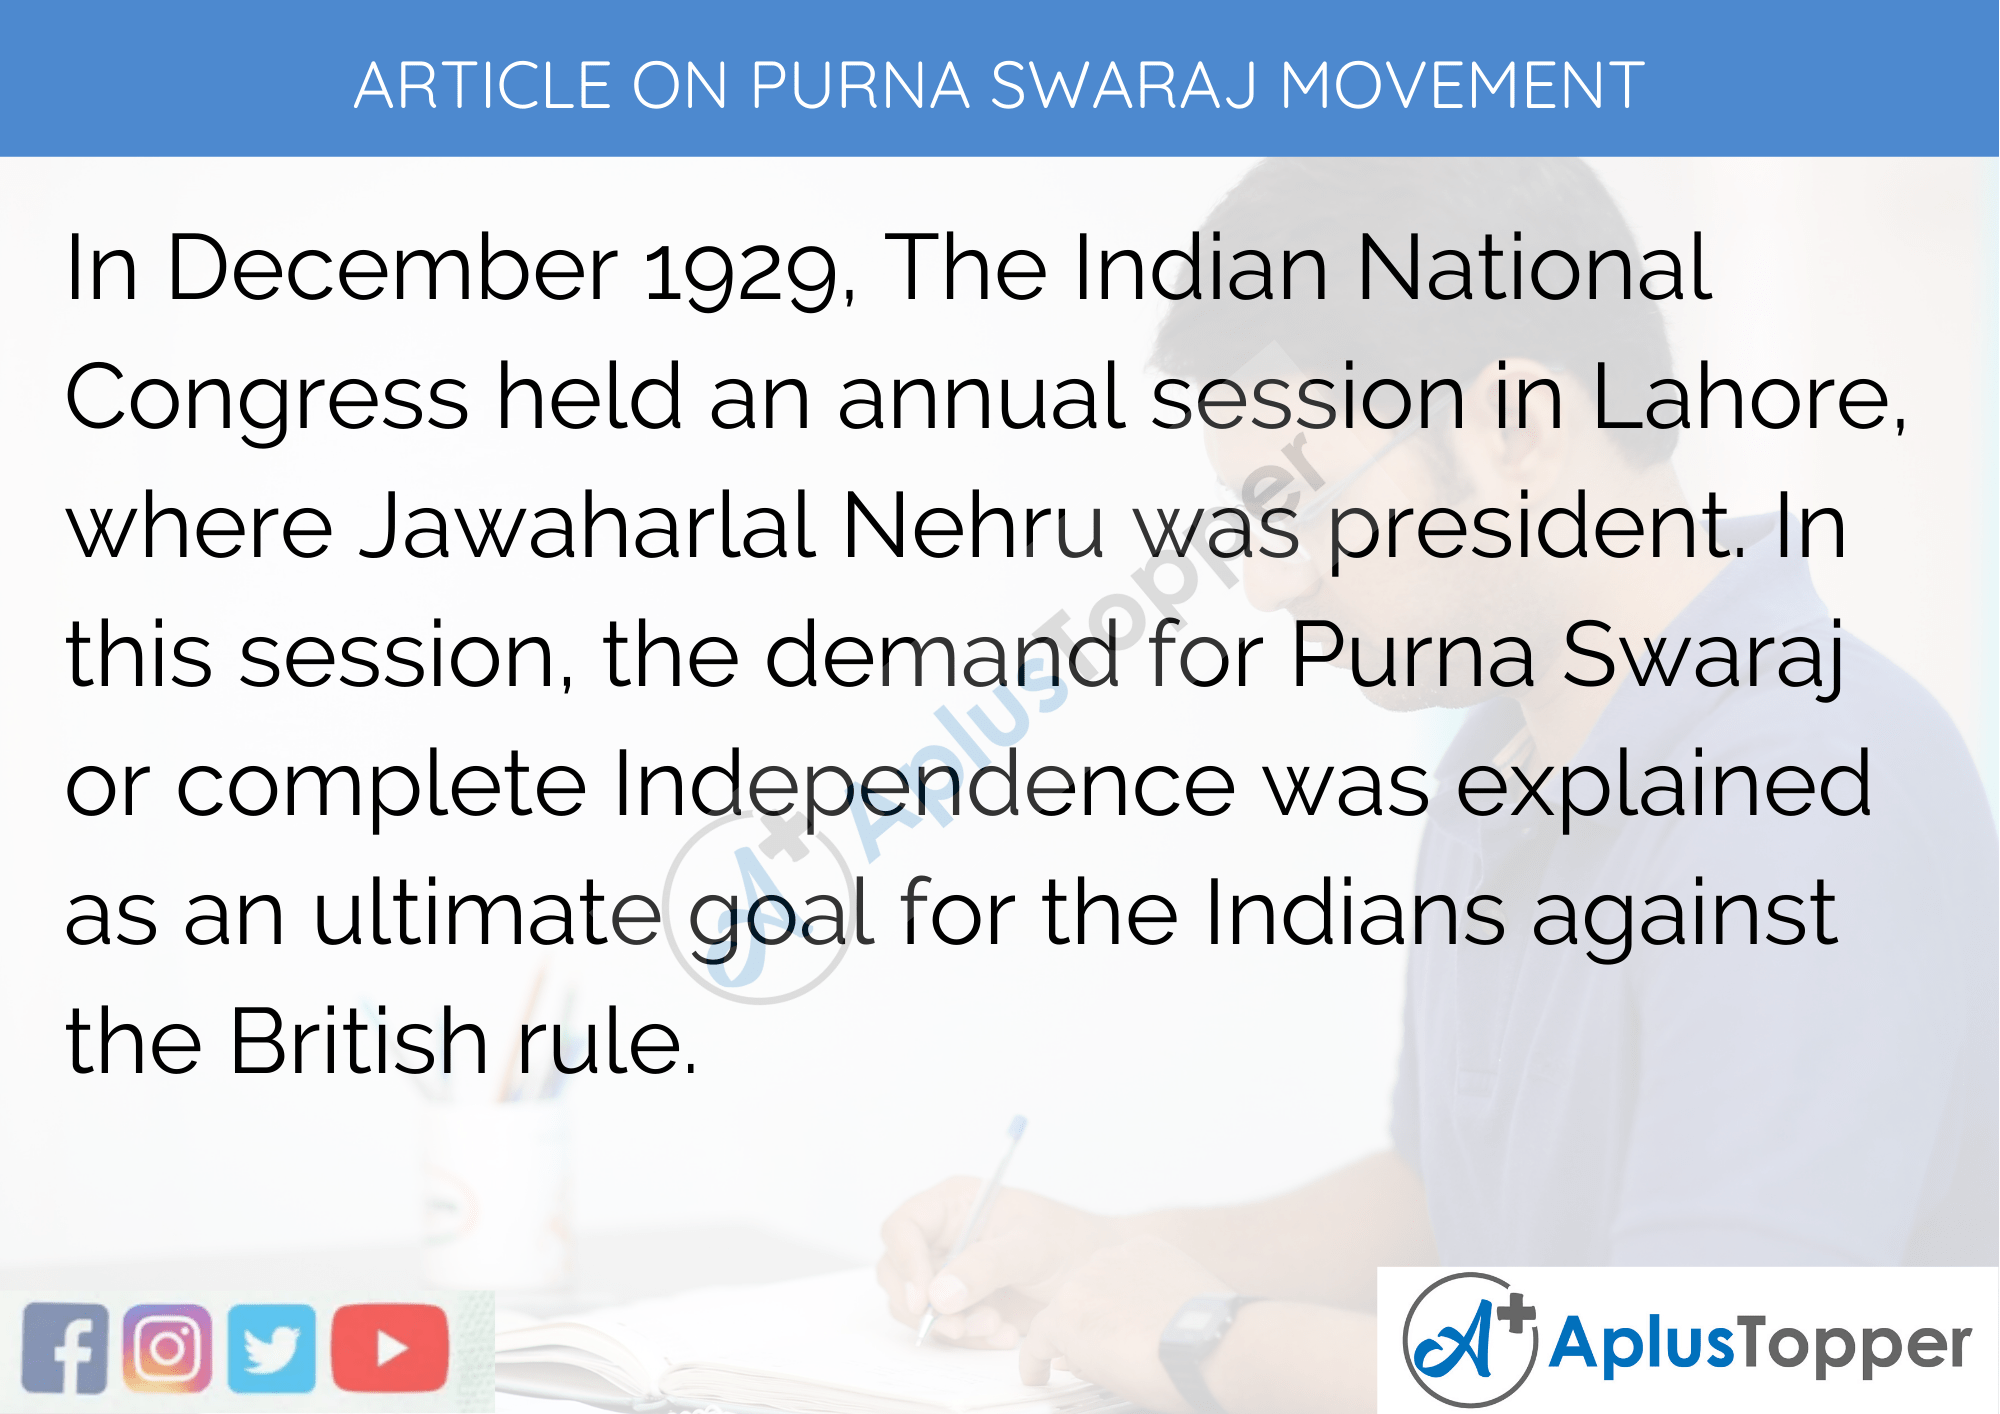 Short Article On Purna Swaraj Movement 300 Words in English